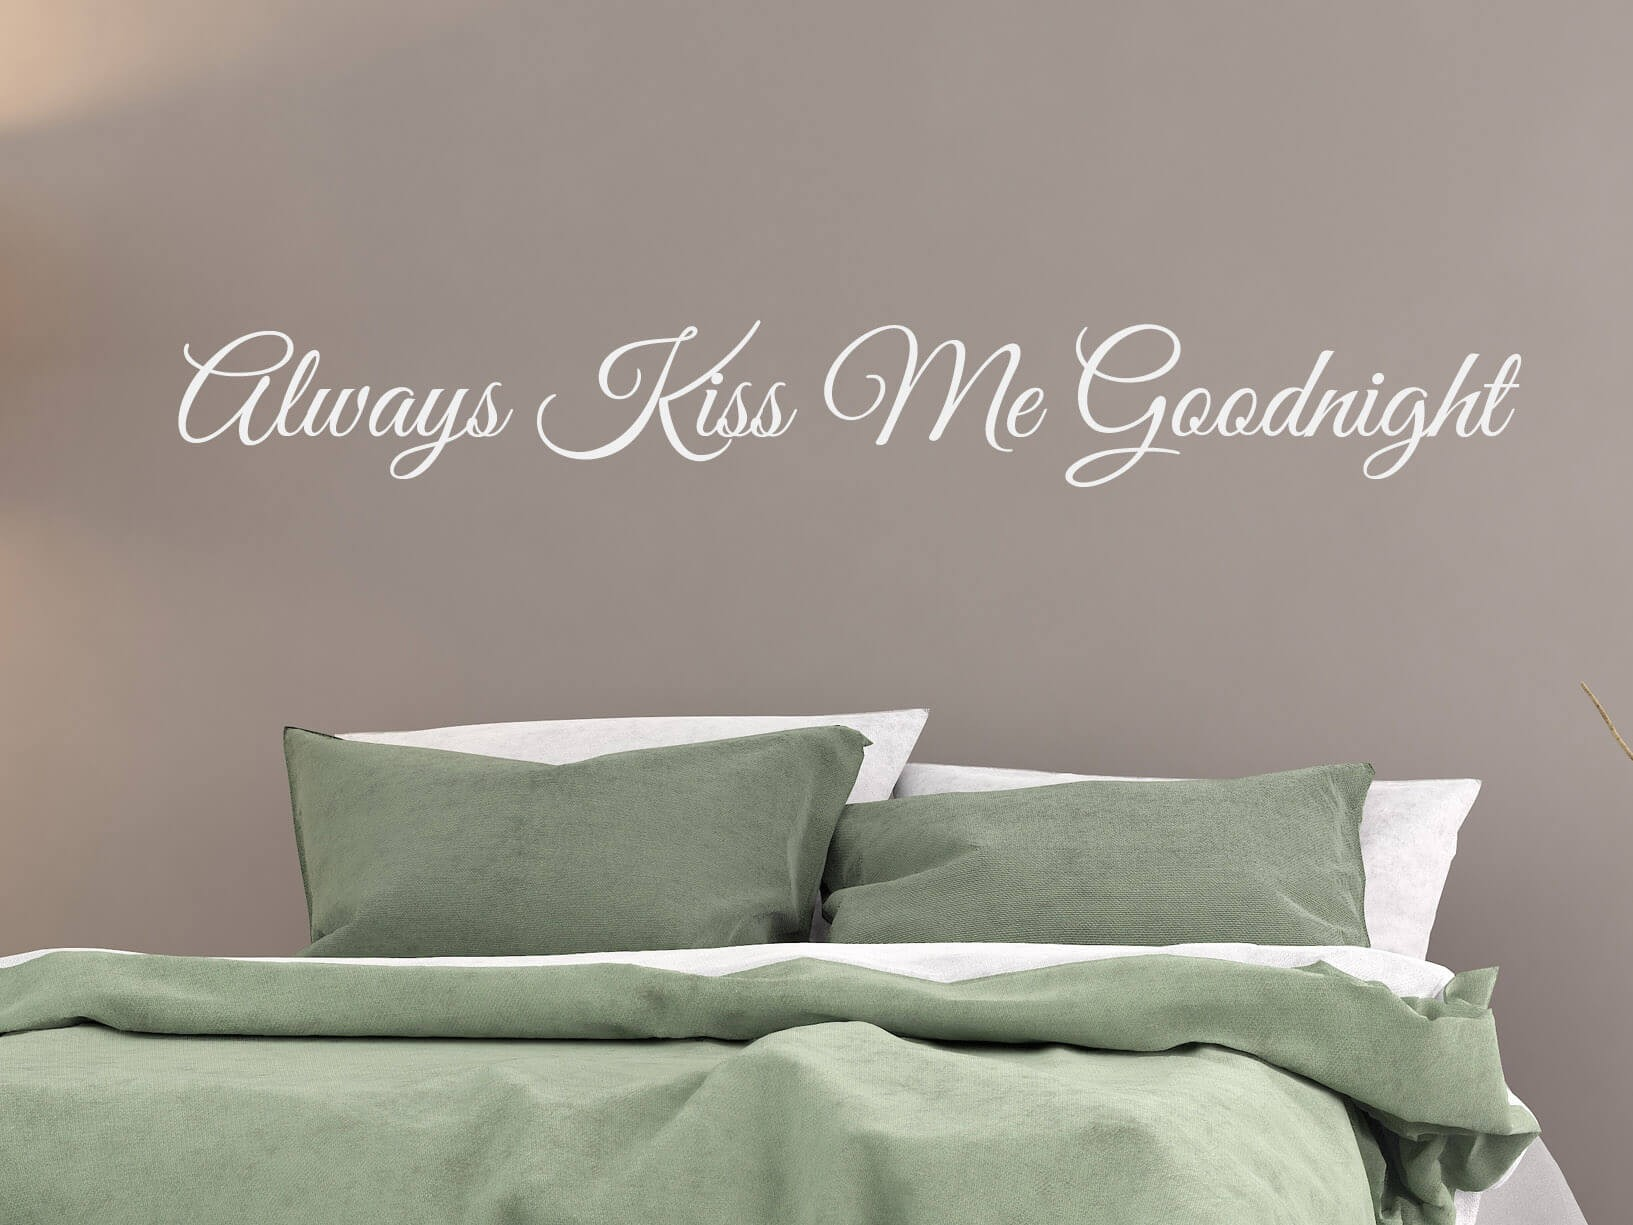 muursticker quotalways kiss me goodnightquot